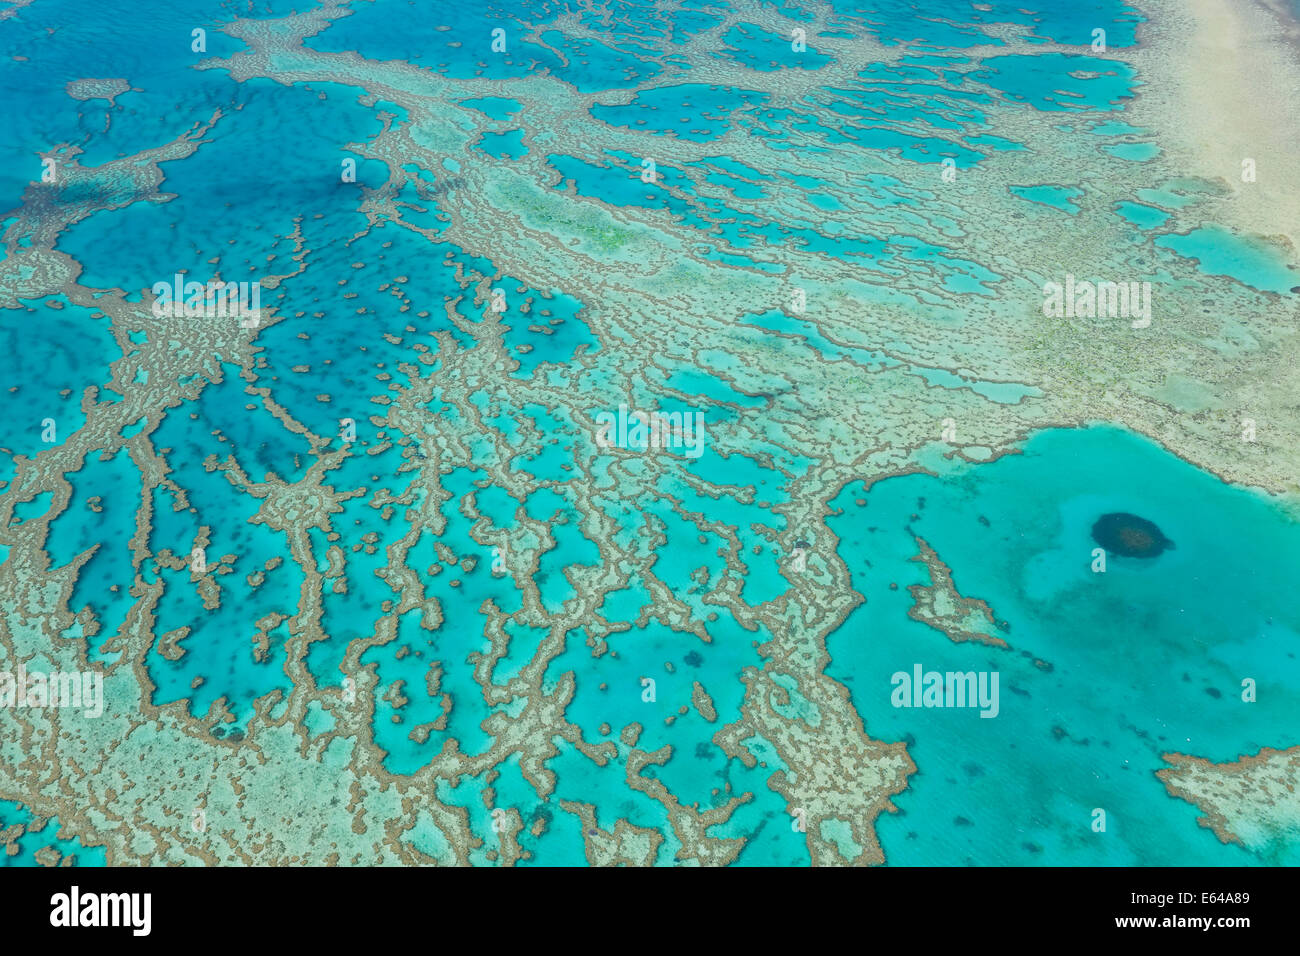 Great Barrier Reef, Queensland, Australien Stockbild